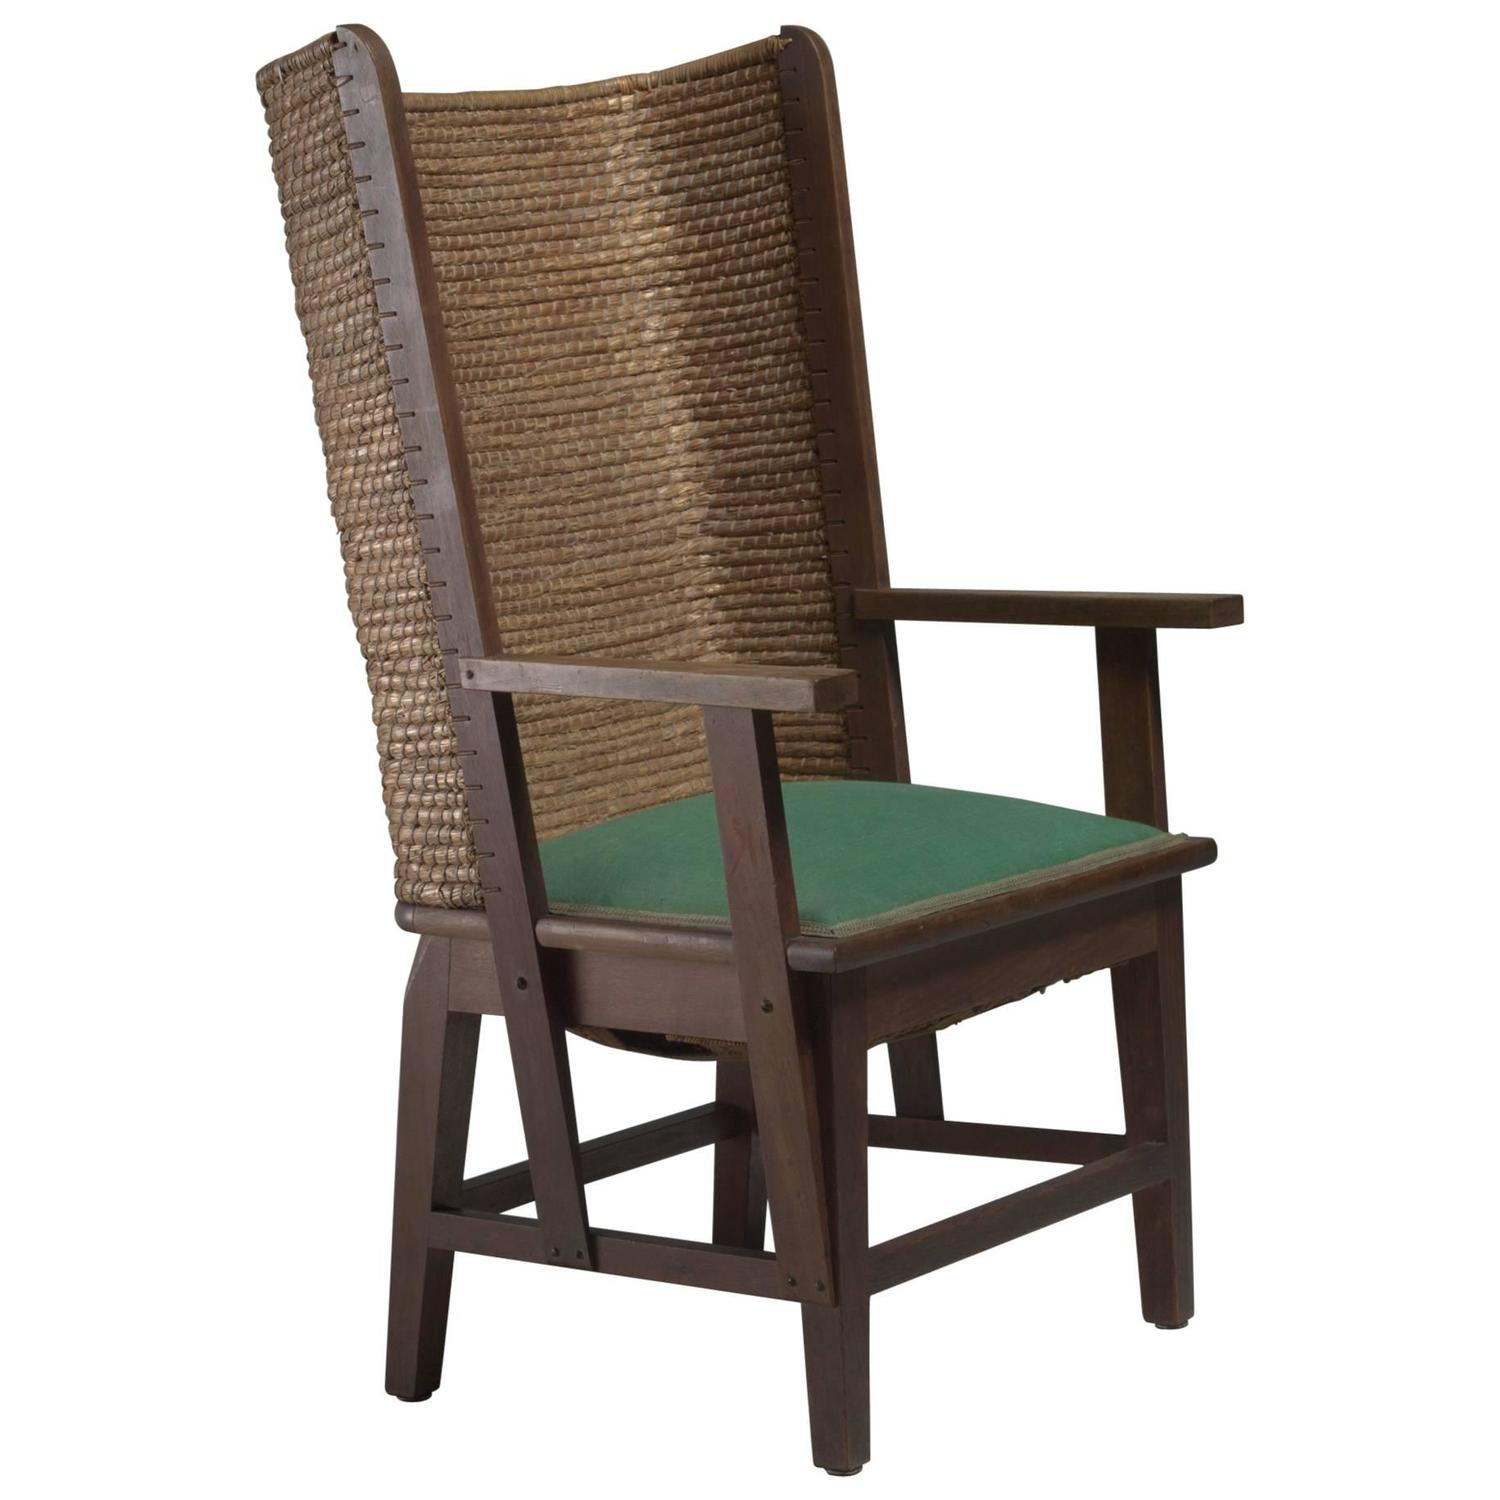 Beau Chris Wegerif Orkney Chair With Green Fabric Seating, Dutch, 1900 For Sale  At 1stdibs